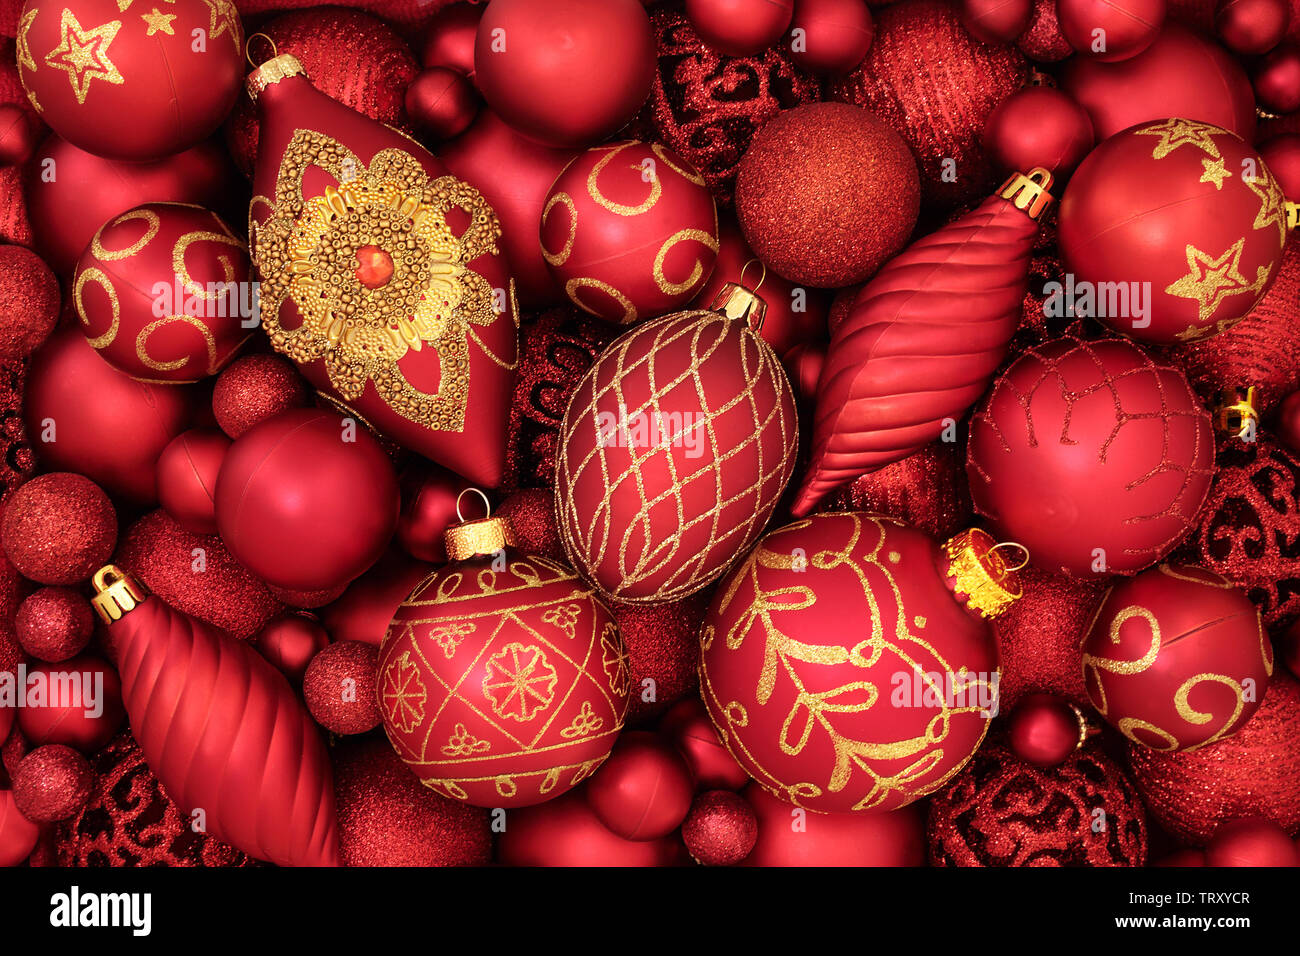 red and gold christmas tree bauble decorations forming an abstract background traditional theme with symbols for the holiday season TRXYCR